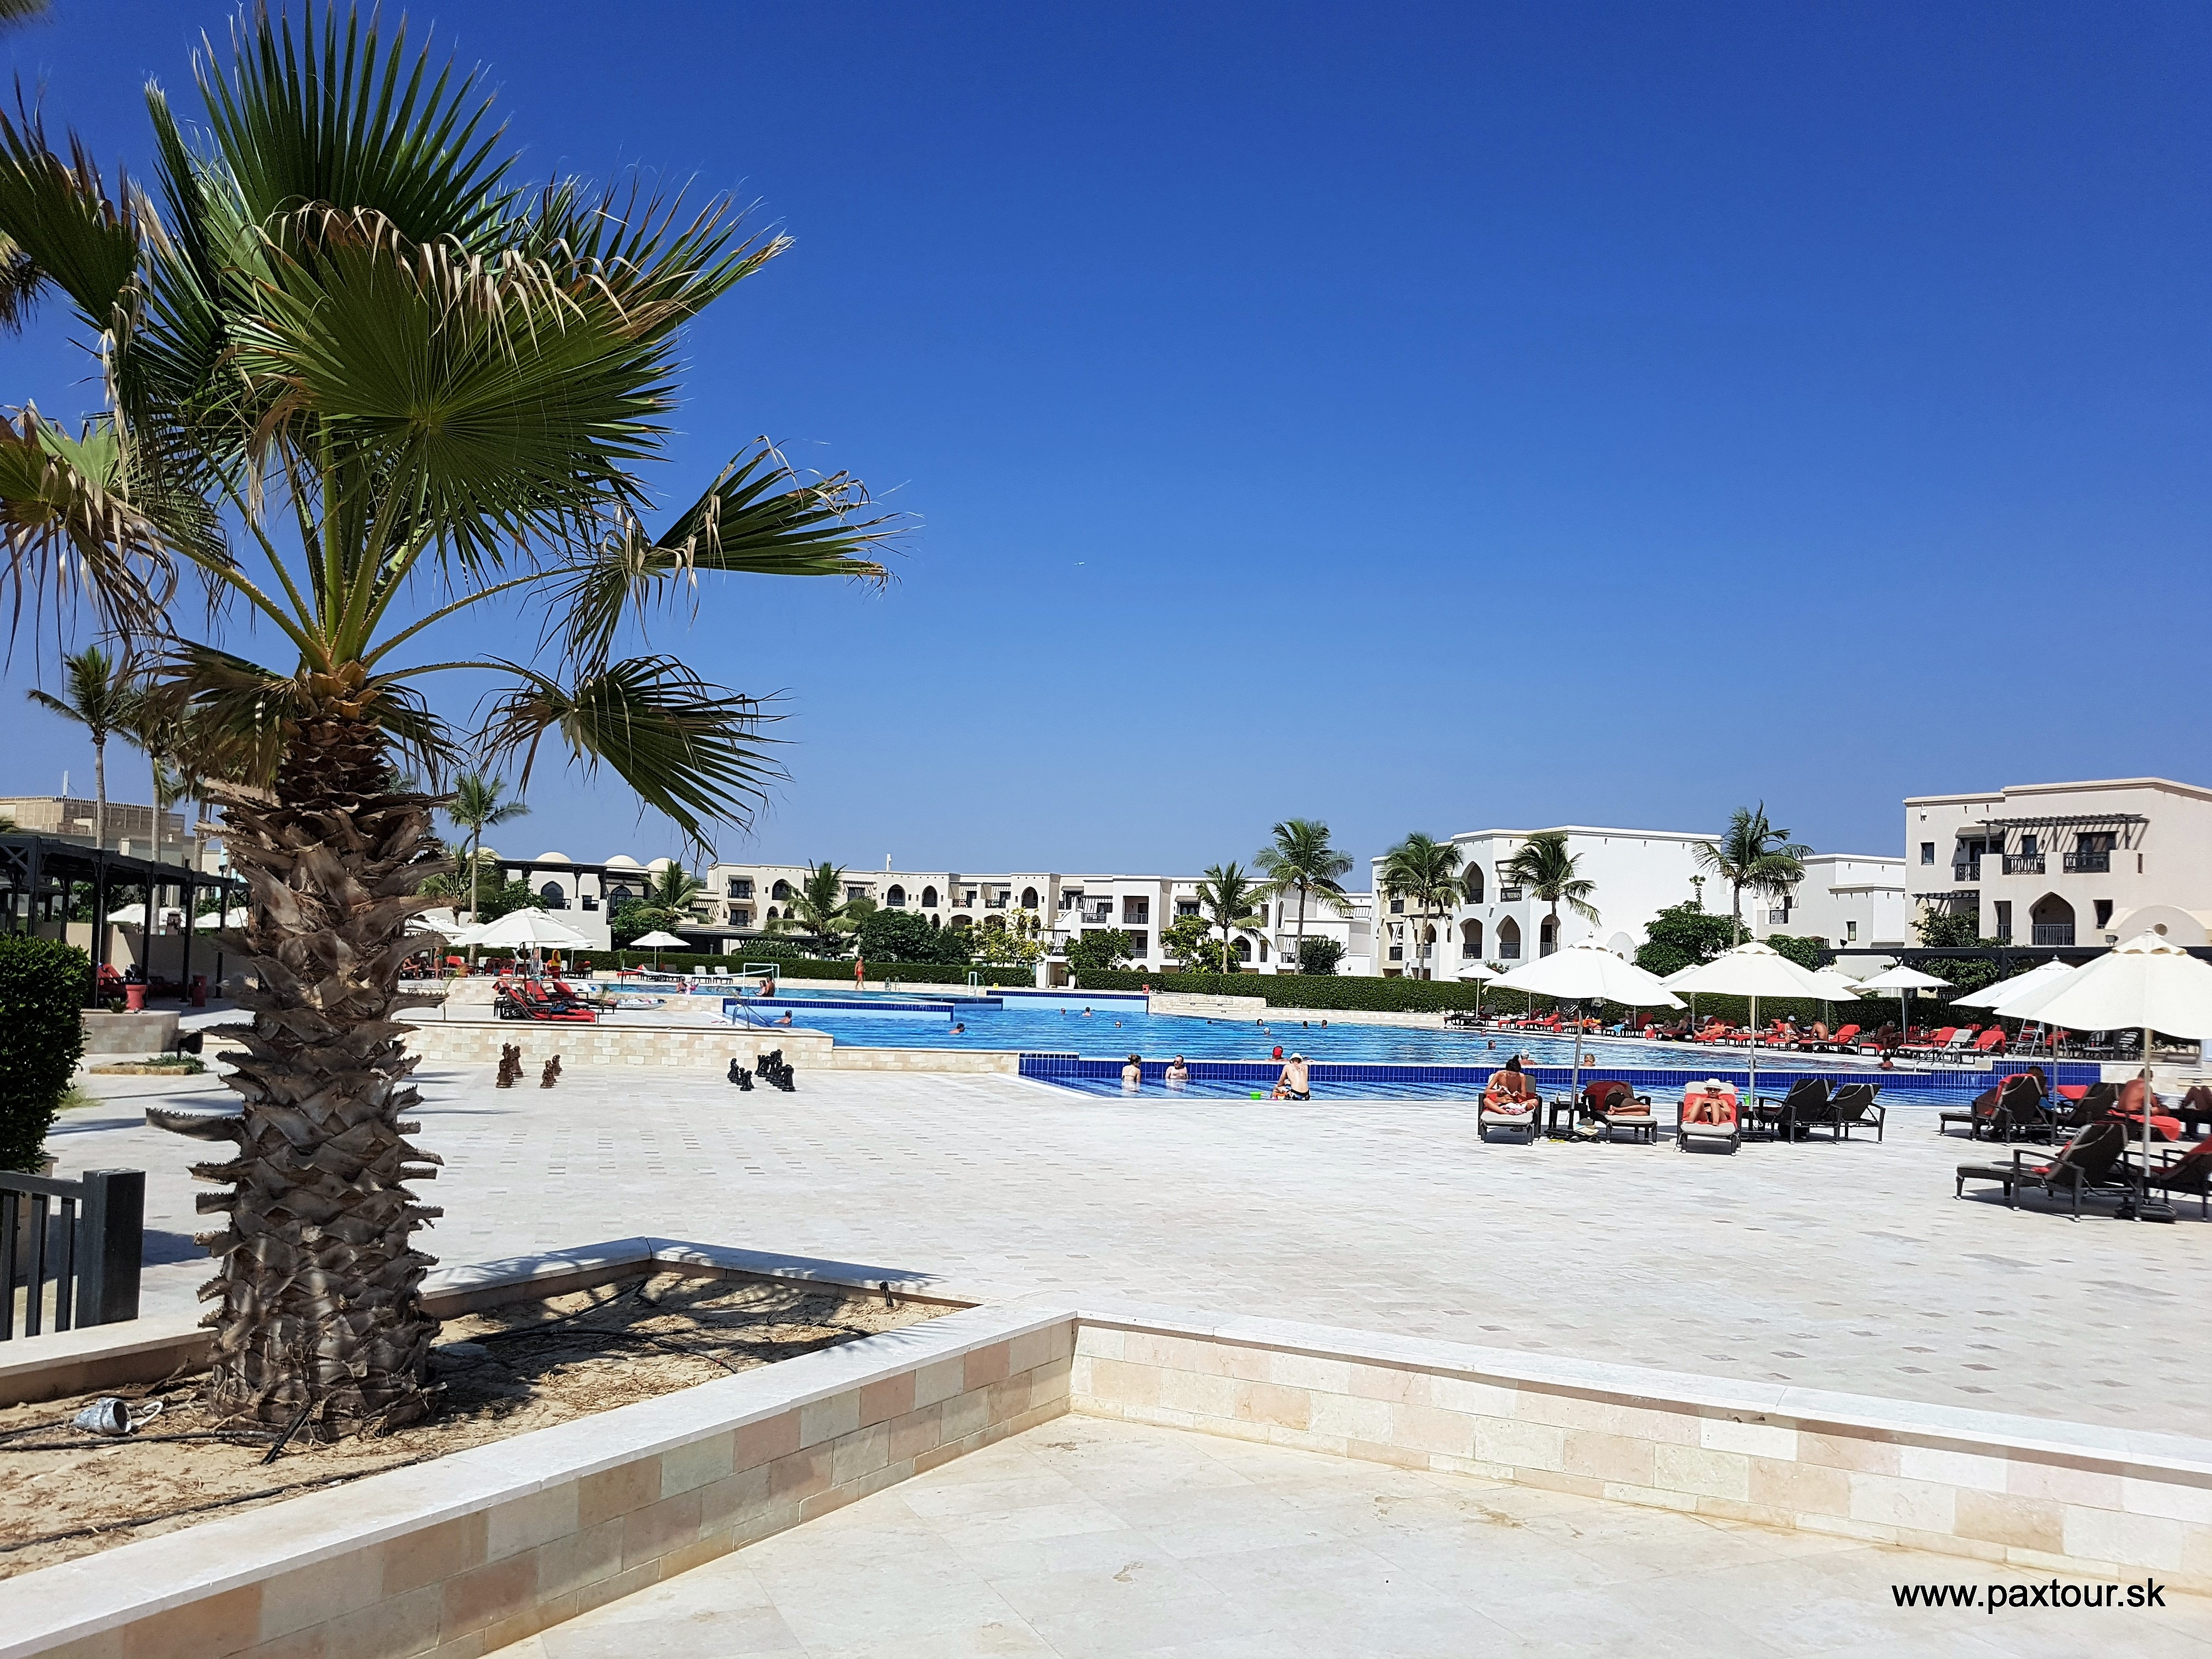 http://www.travelsys.sk/public/users/paxtour/images/fotogaleria_hotel/l_oman014.jpg